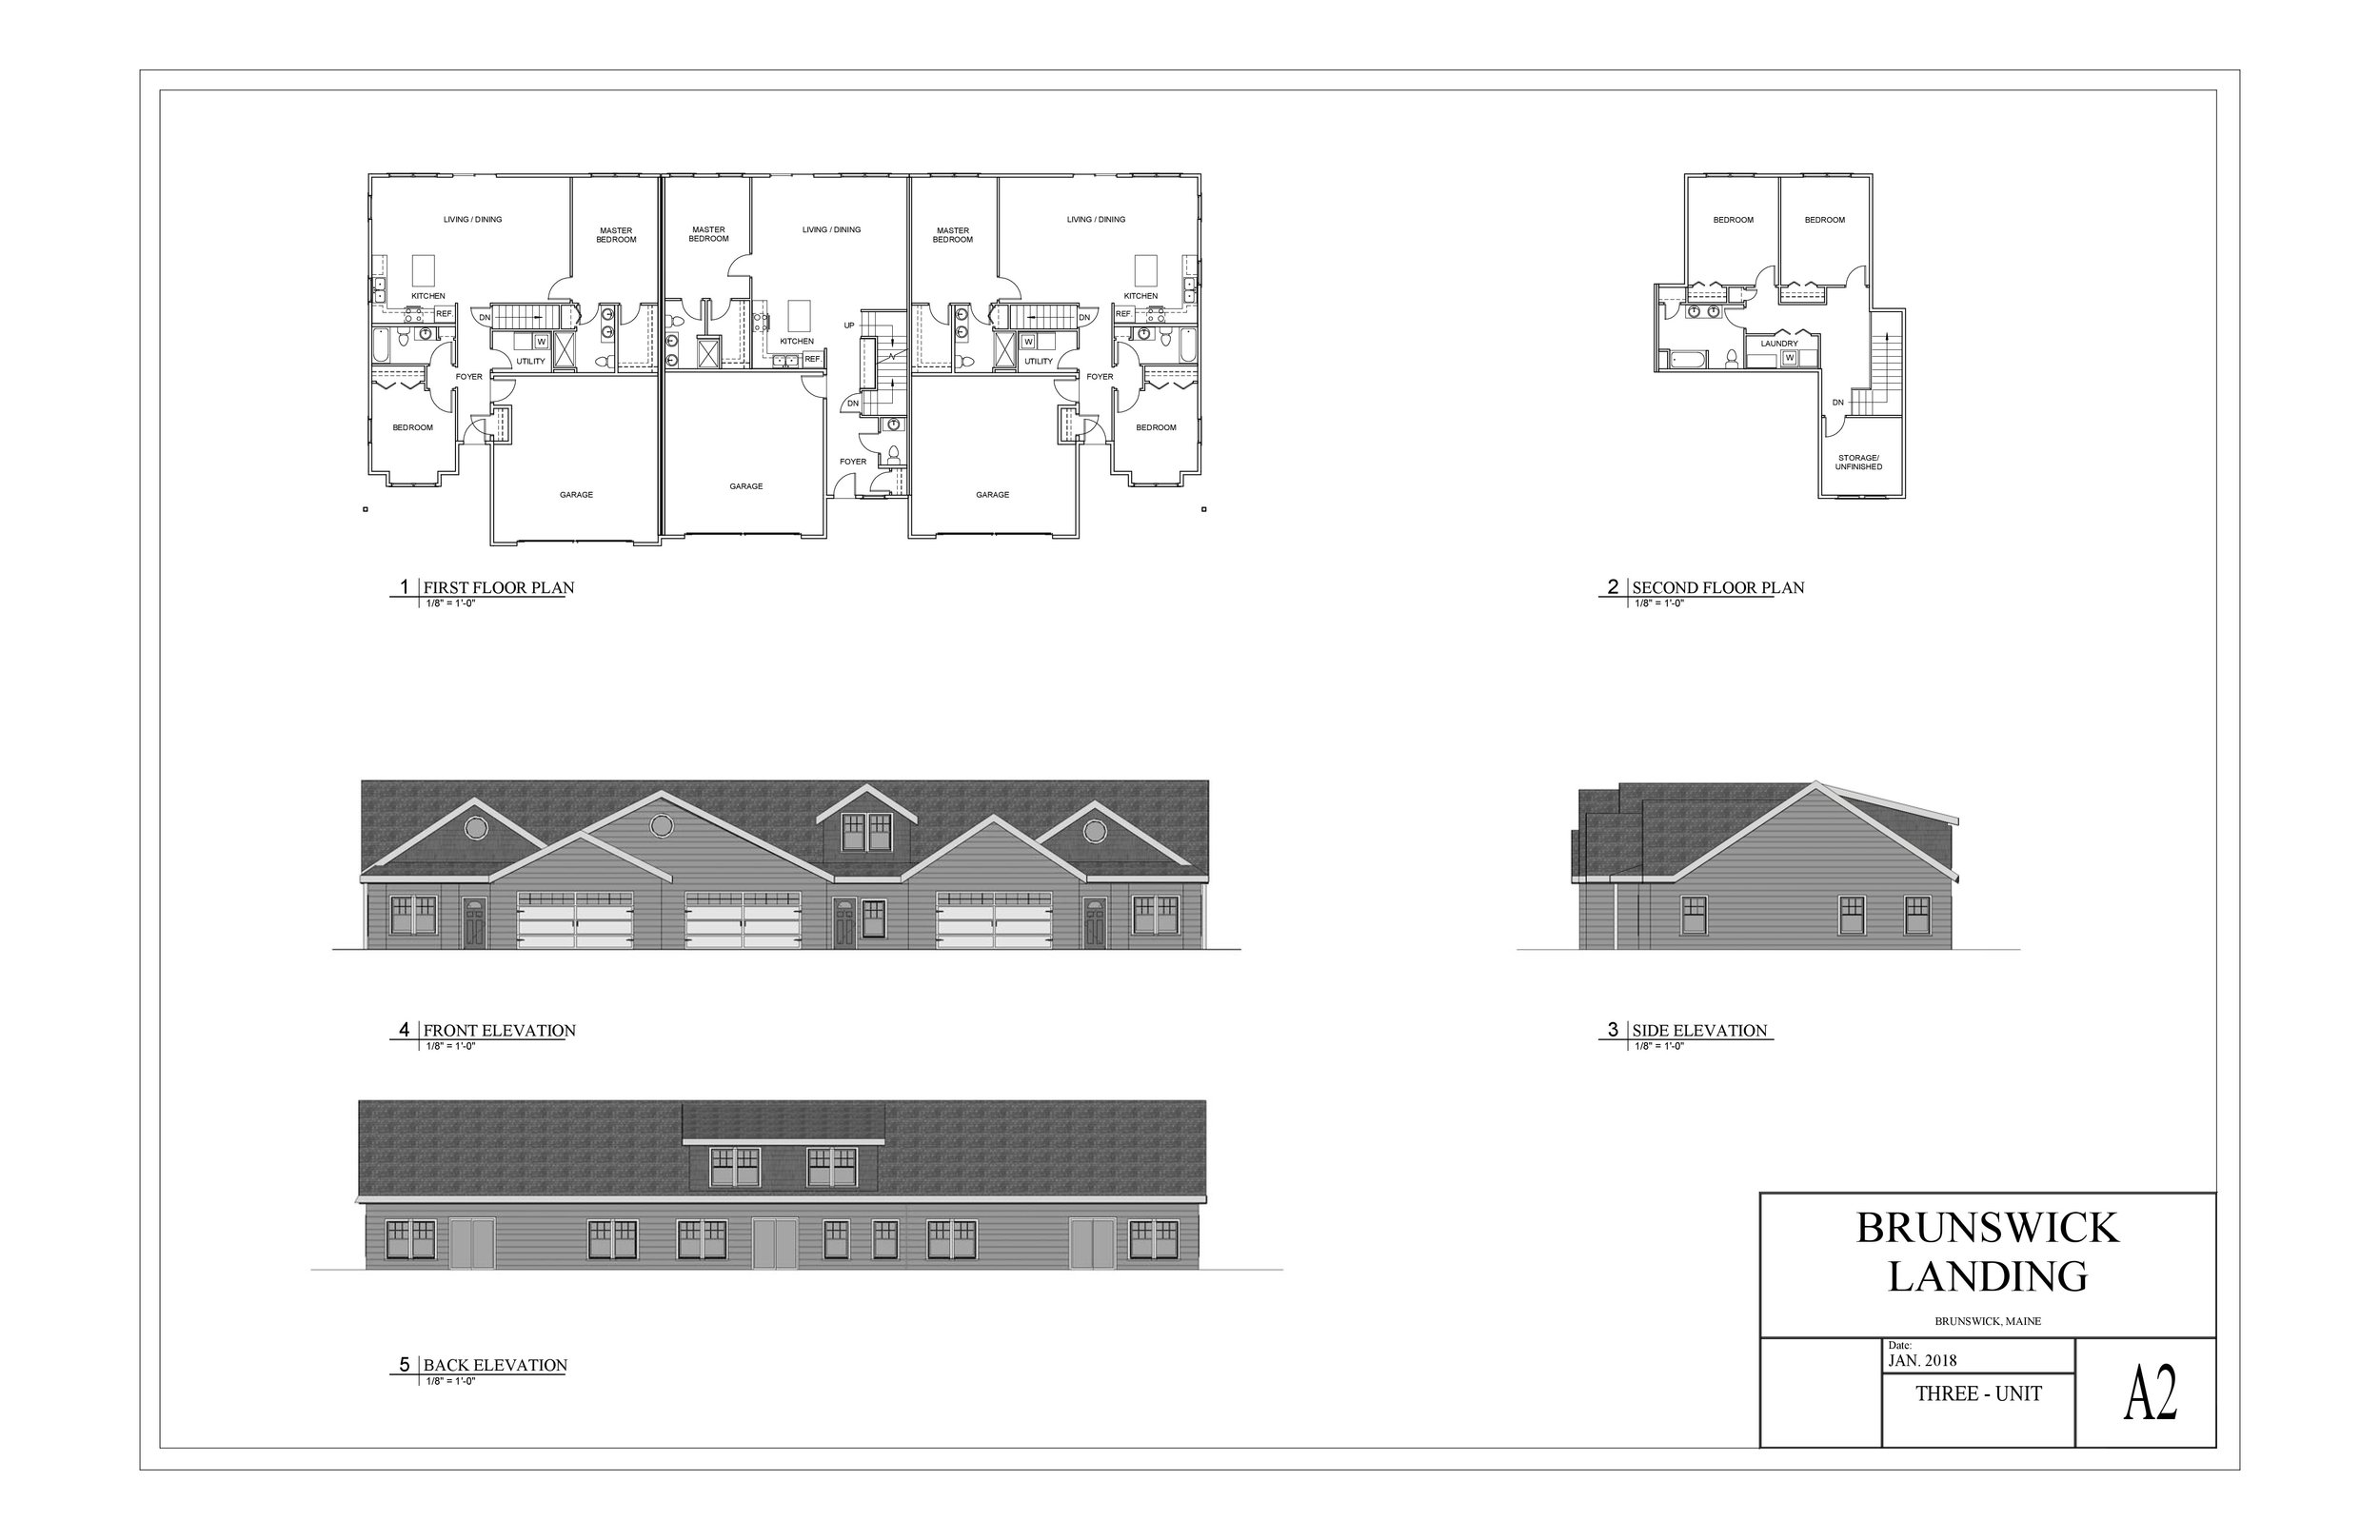 Brunswick Landing Condos 3 Unit Plan